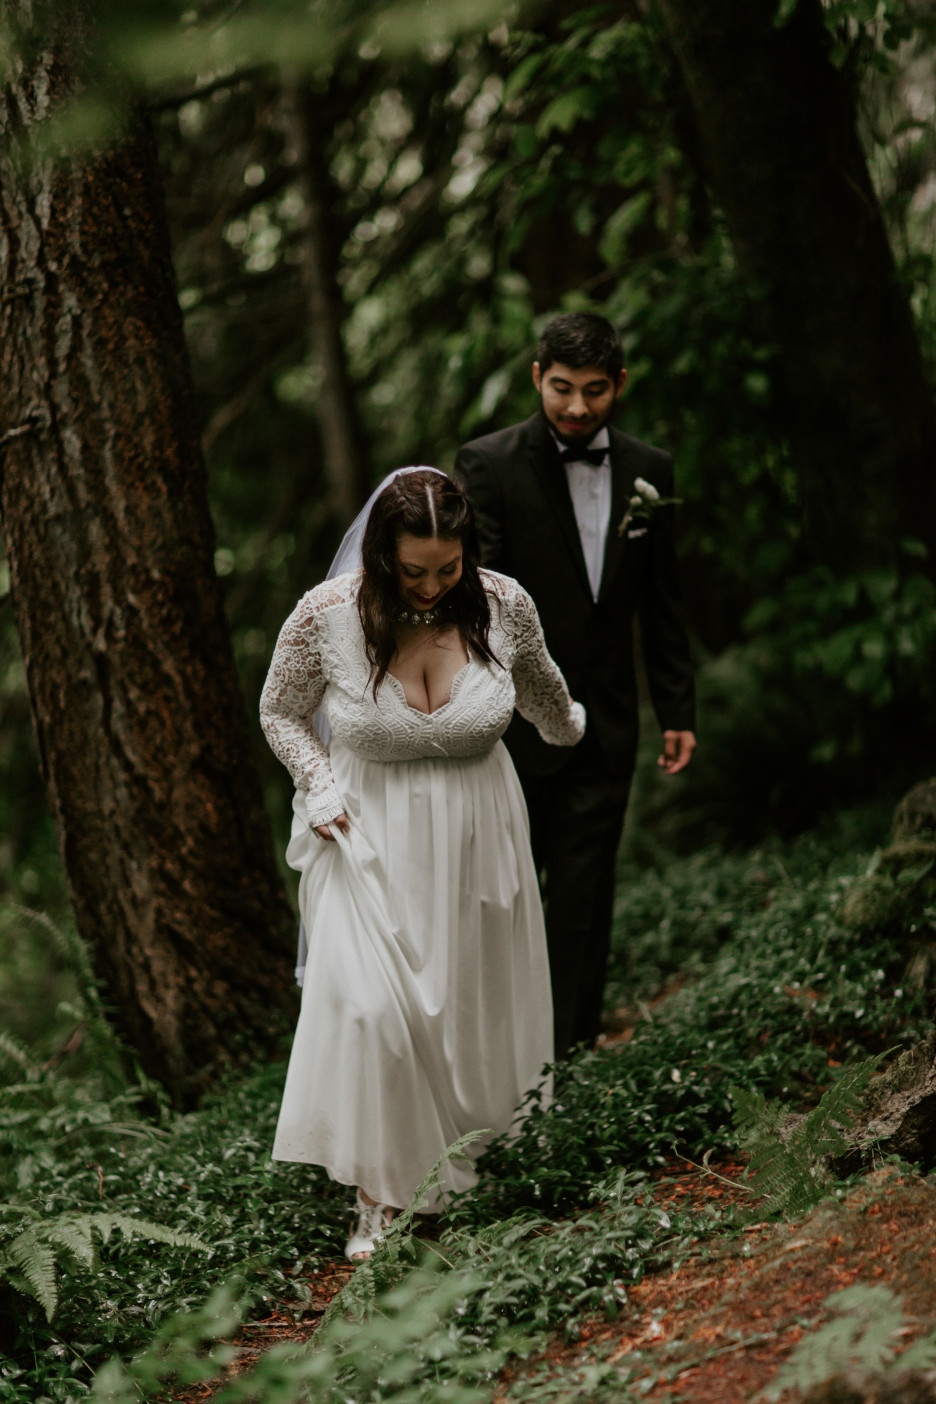 Sarah leads Sam through the woods at Skamania House, Washington. Elopement photography in Portland Oregon by Sienna Plus Josh.